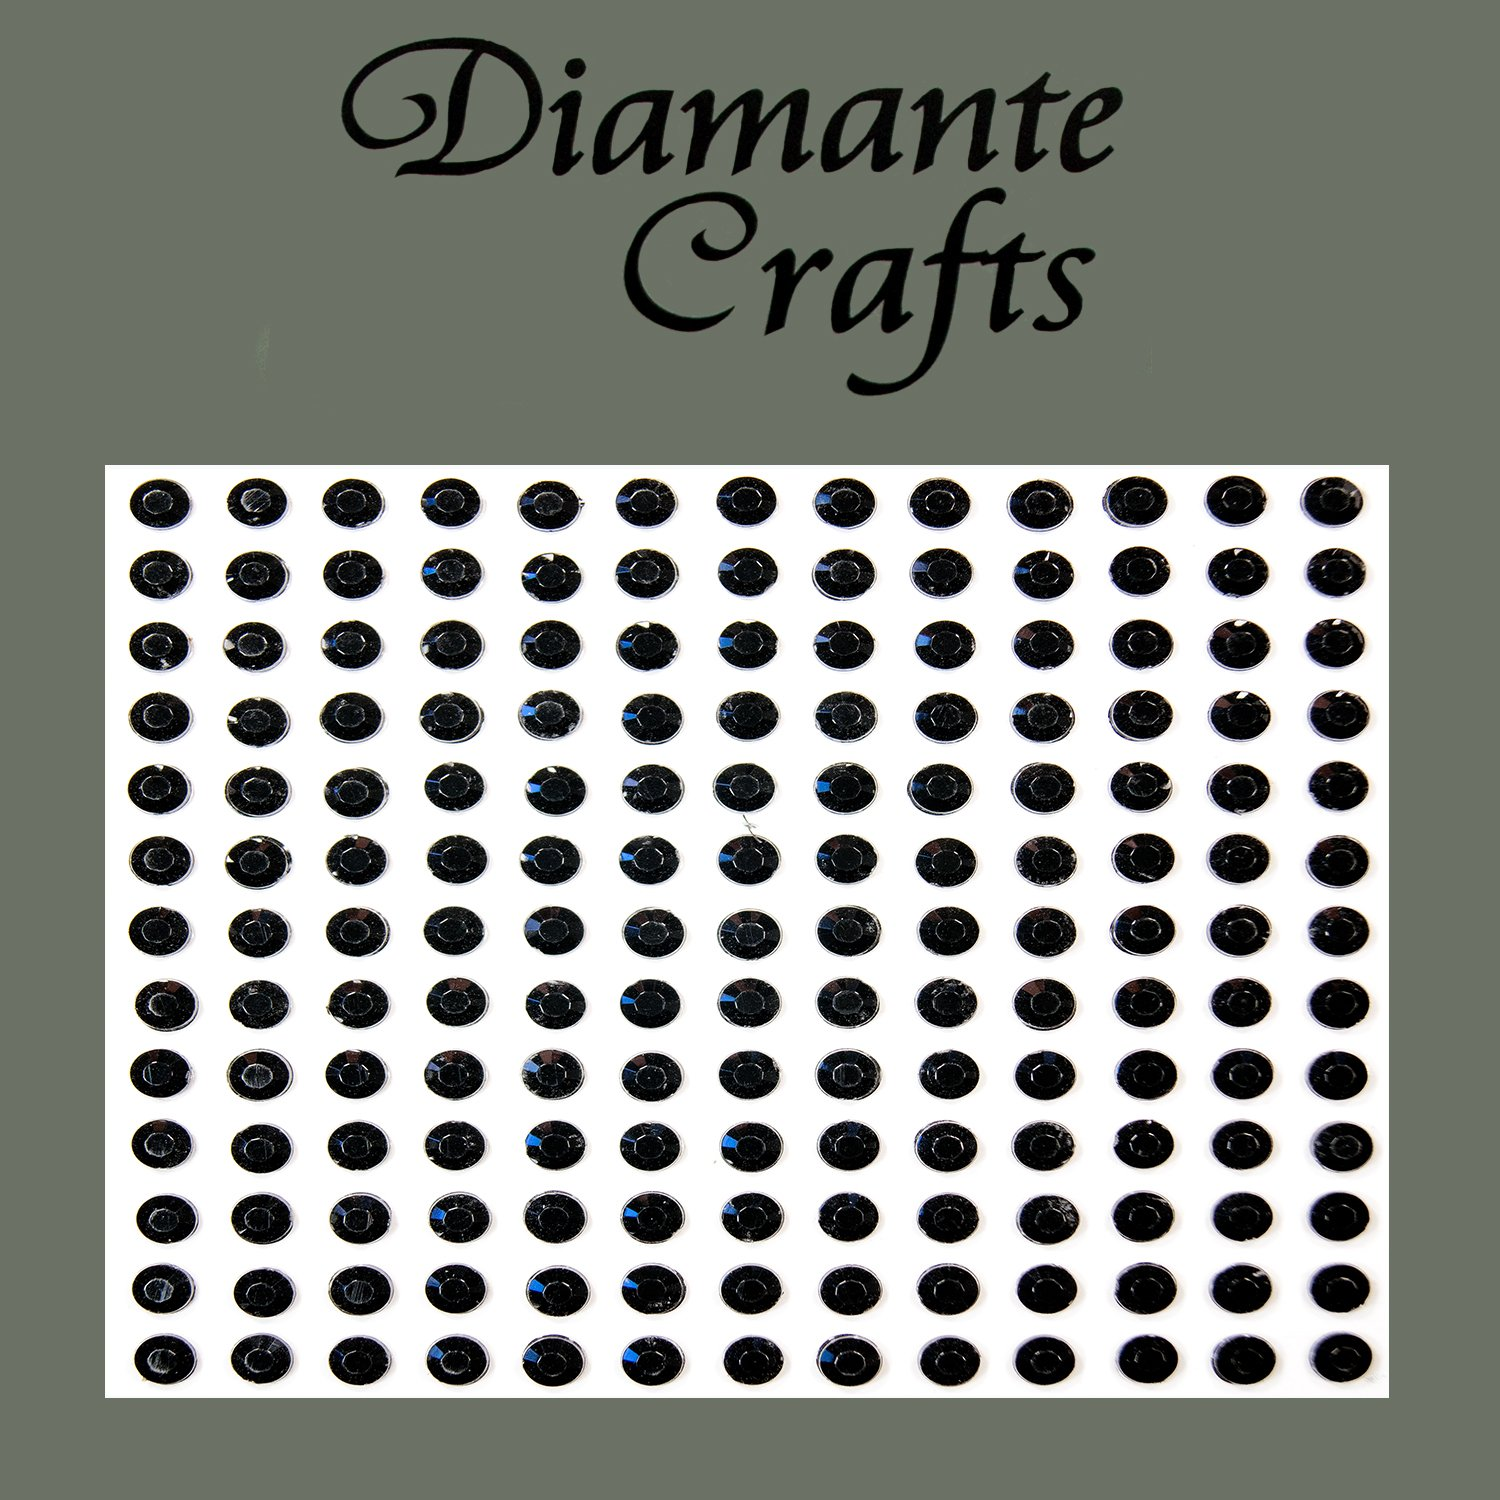 169 x 4mm Black Diamante Vajazzle Rhinestone Body Gems - created exclusively for Diamante Crafts